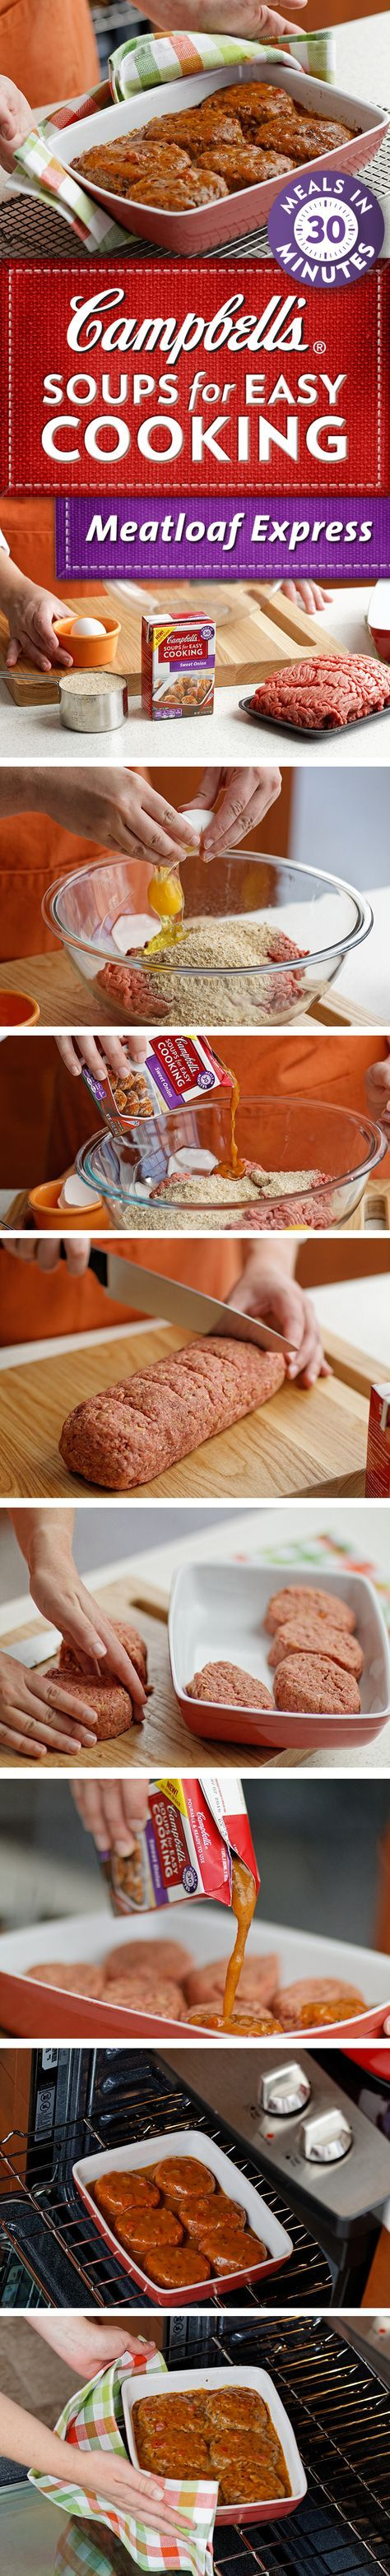 Meatloaf Express - Delight your family by serving them their own mini meatloaf. They're packed with flavor, super moist and topped with savory sweet onion soup. Best of all, you can have this winning meal ready to serve in just 35 minutes!